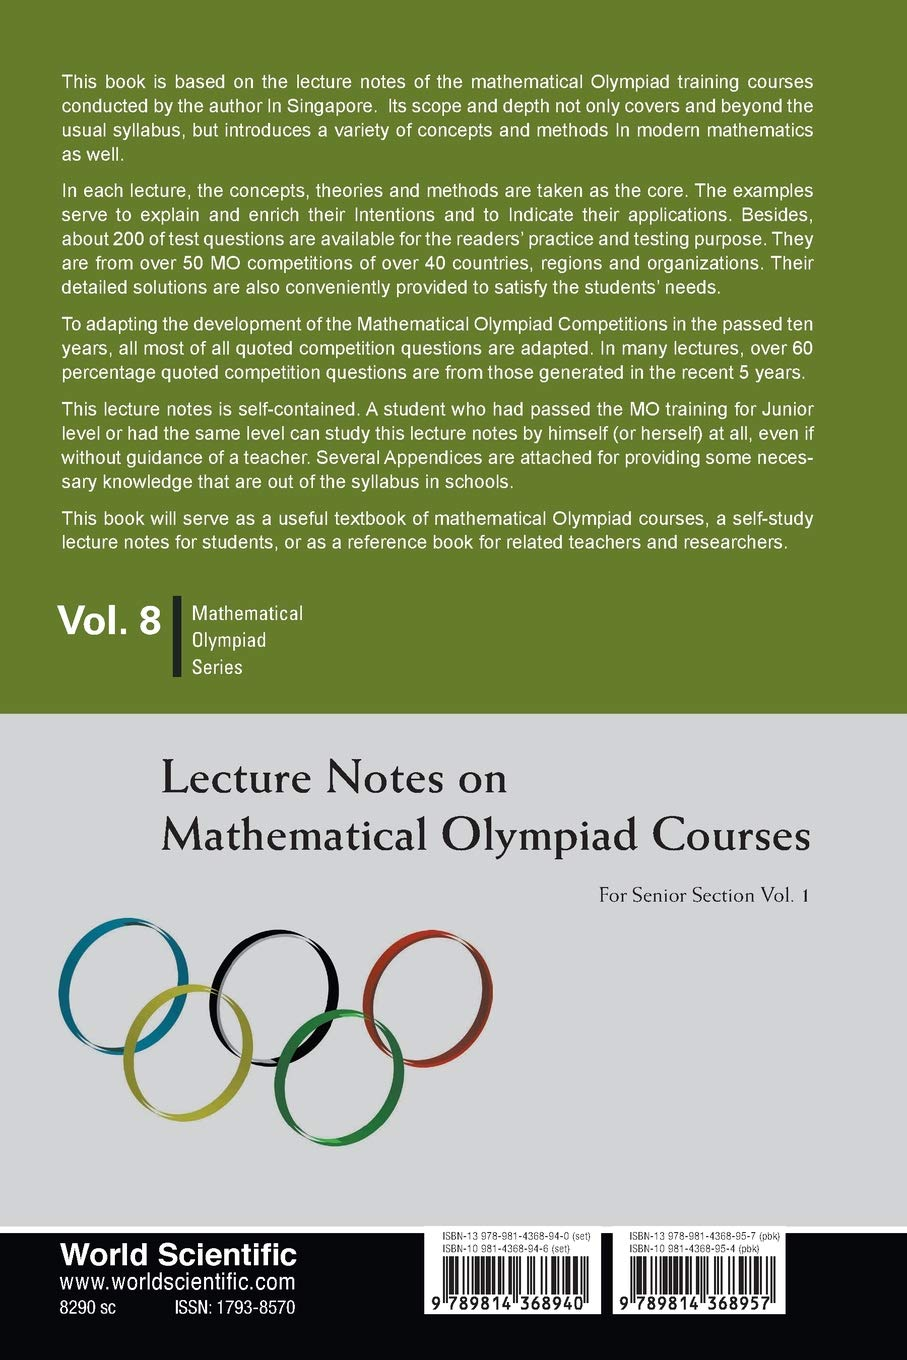 Buy Lecture Notes on Mathematical Olympiad Courses: Volume 8: For